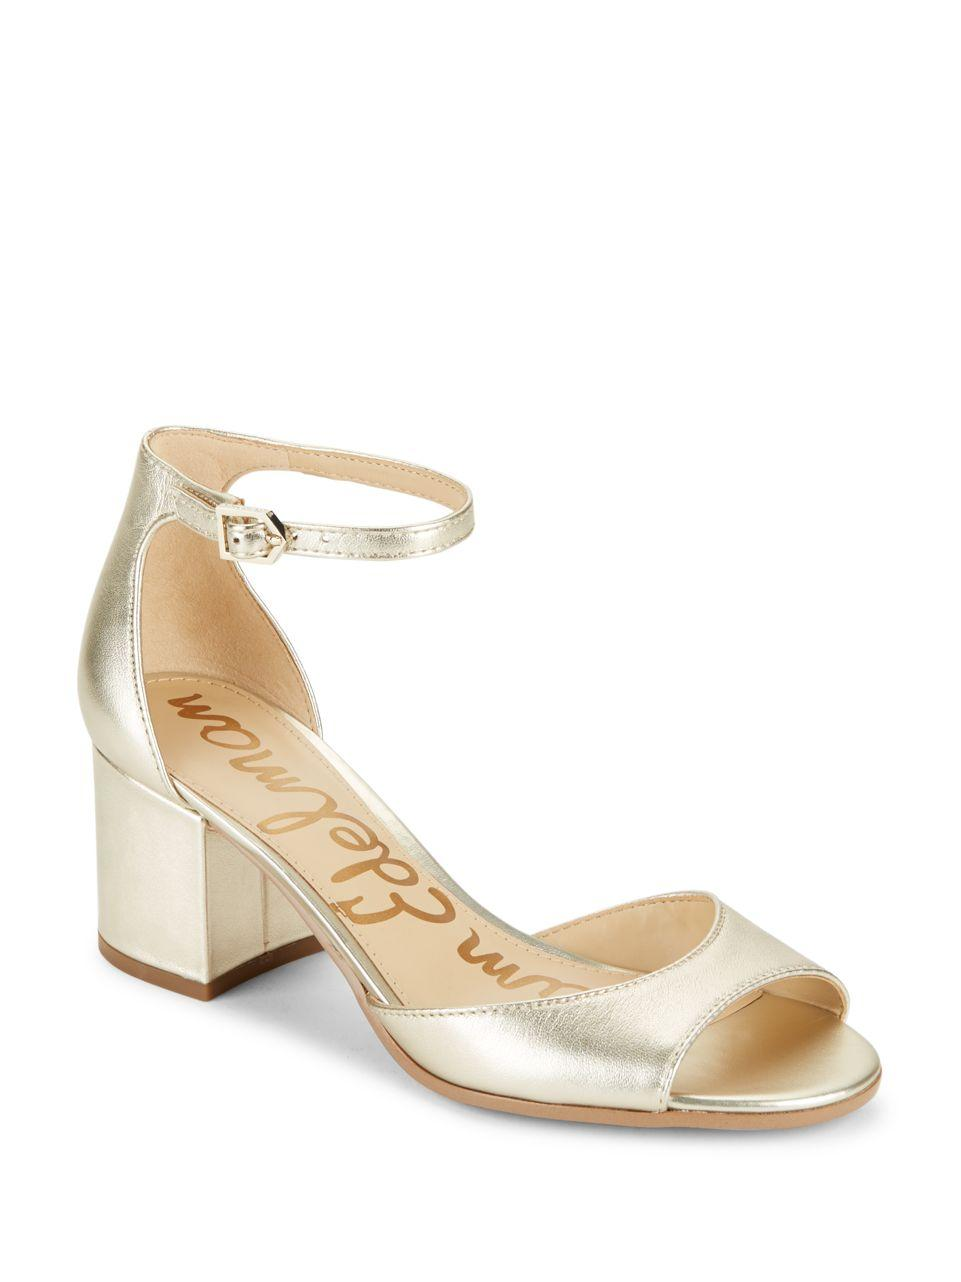 Lyst Sam Edelman Susie Sandals In Metallic